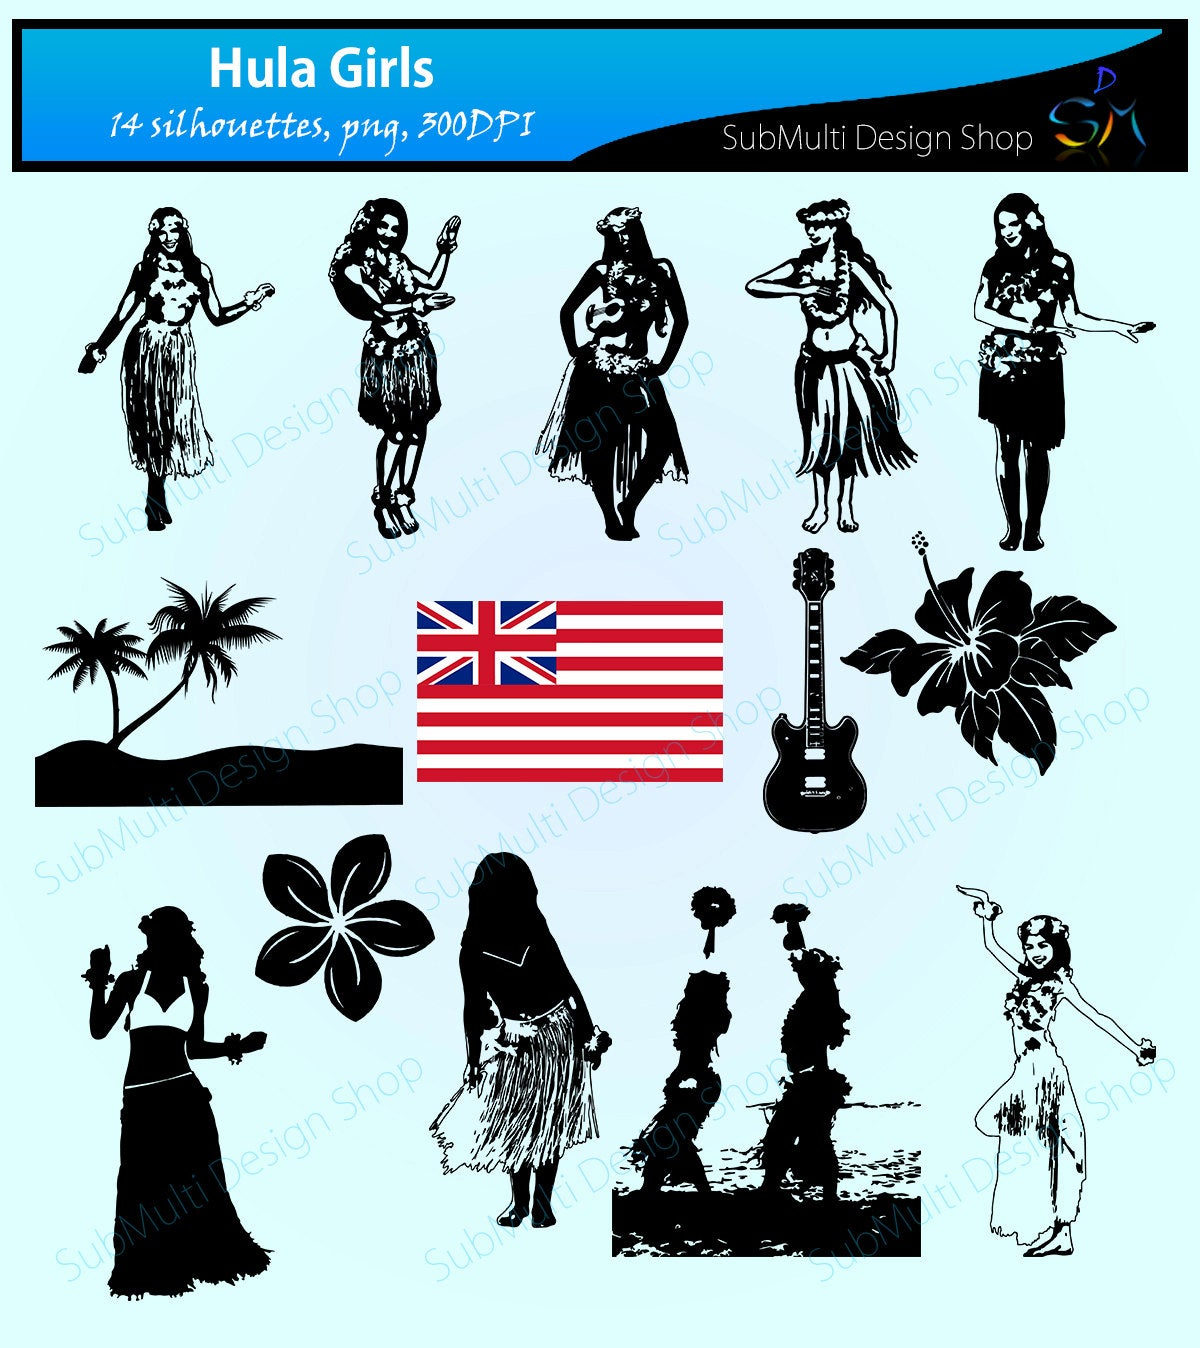 Hula girls silhouette svg / hawaii silhouette / hawaii girls silhouette /  hawaii beauty / silhouette svg cut / clipart / instant download.